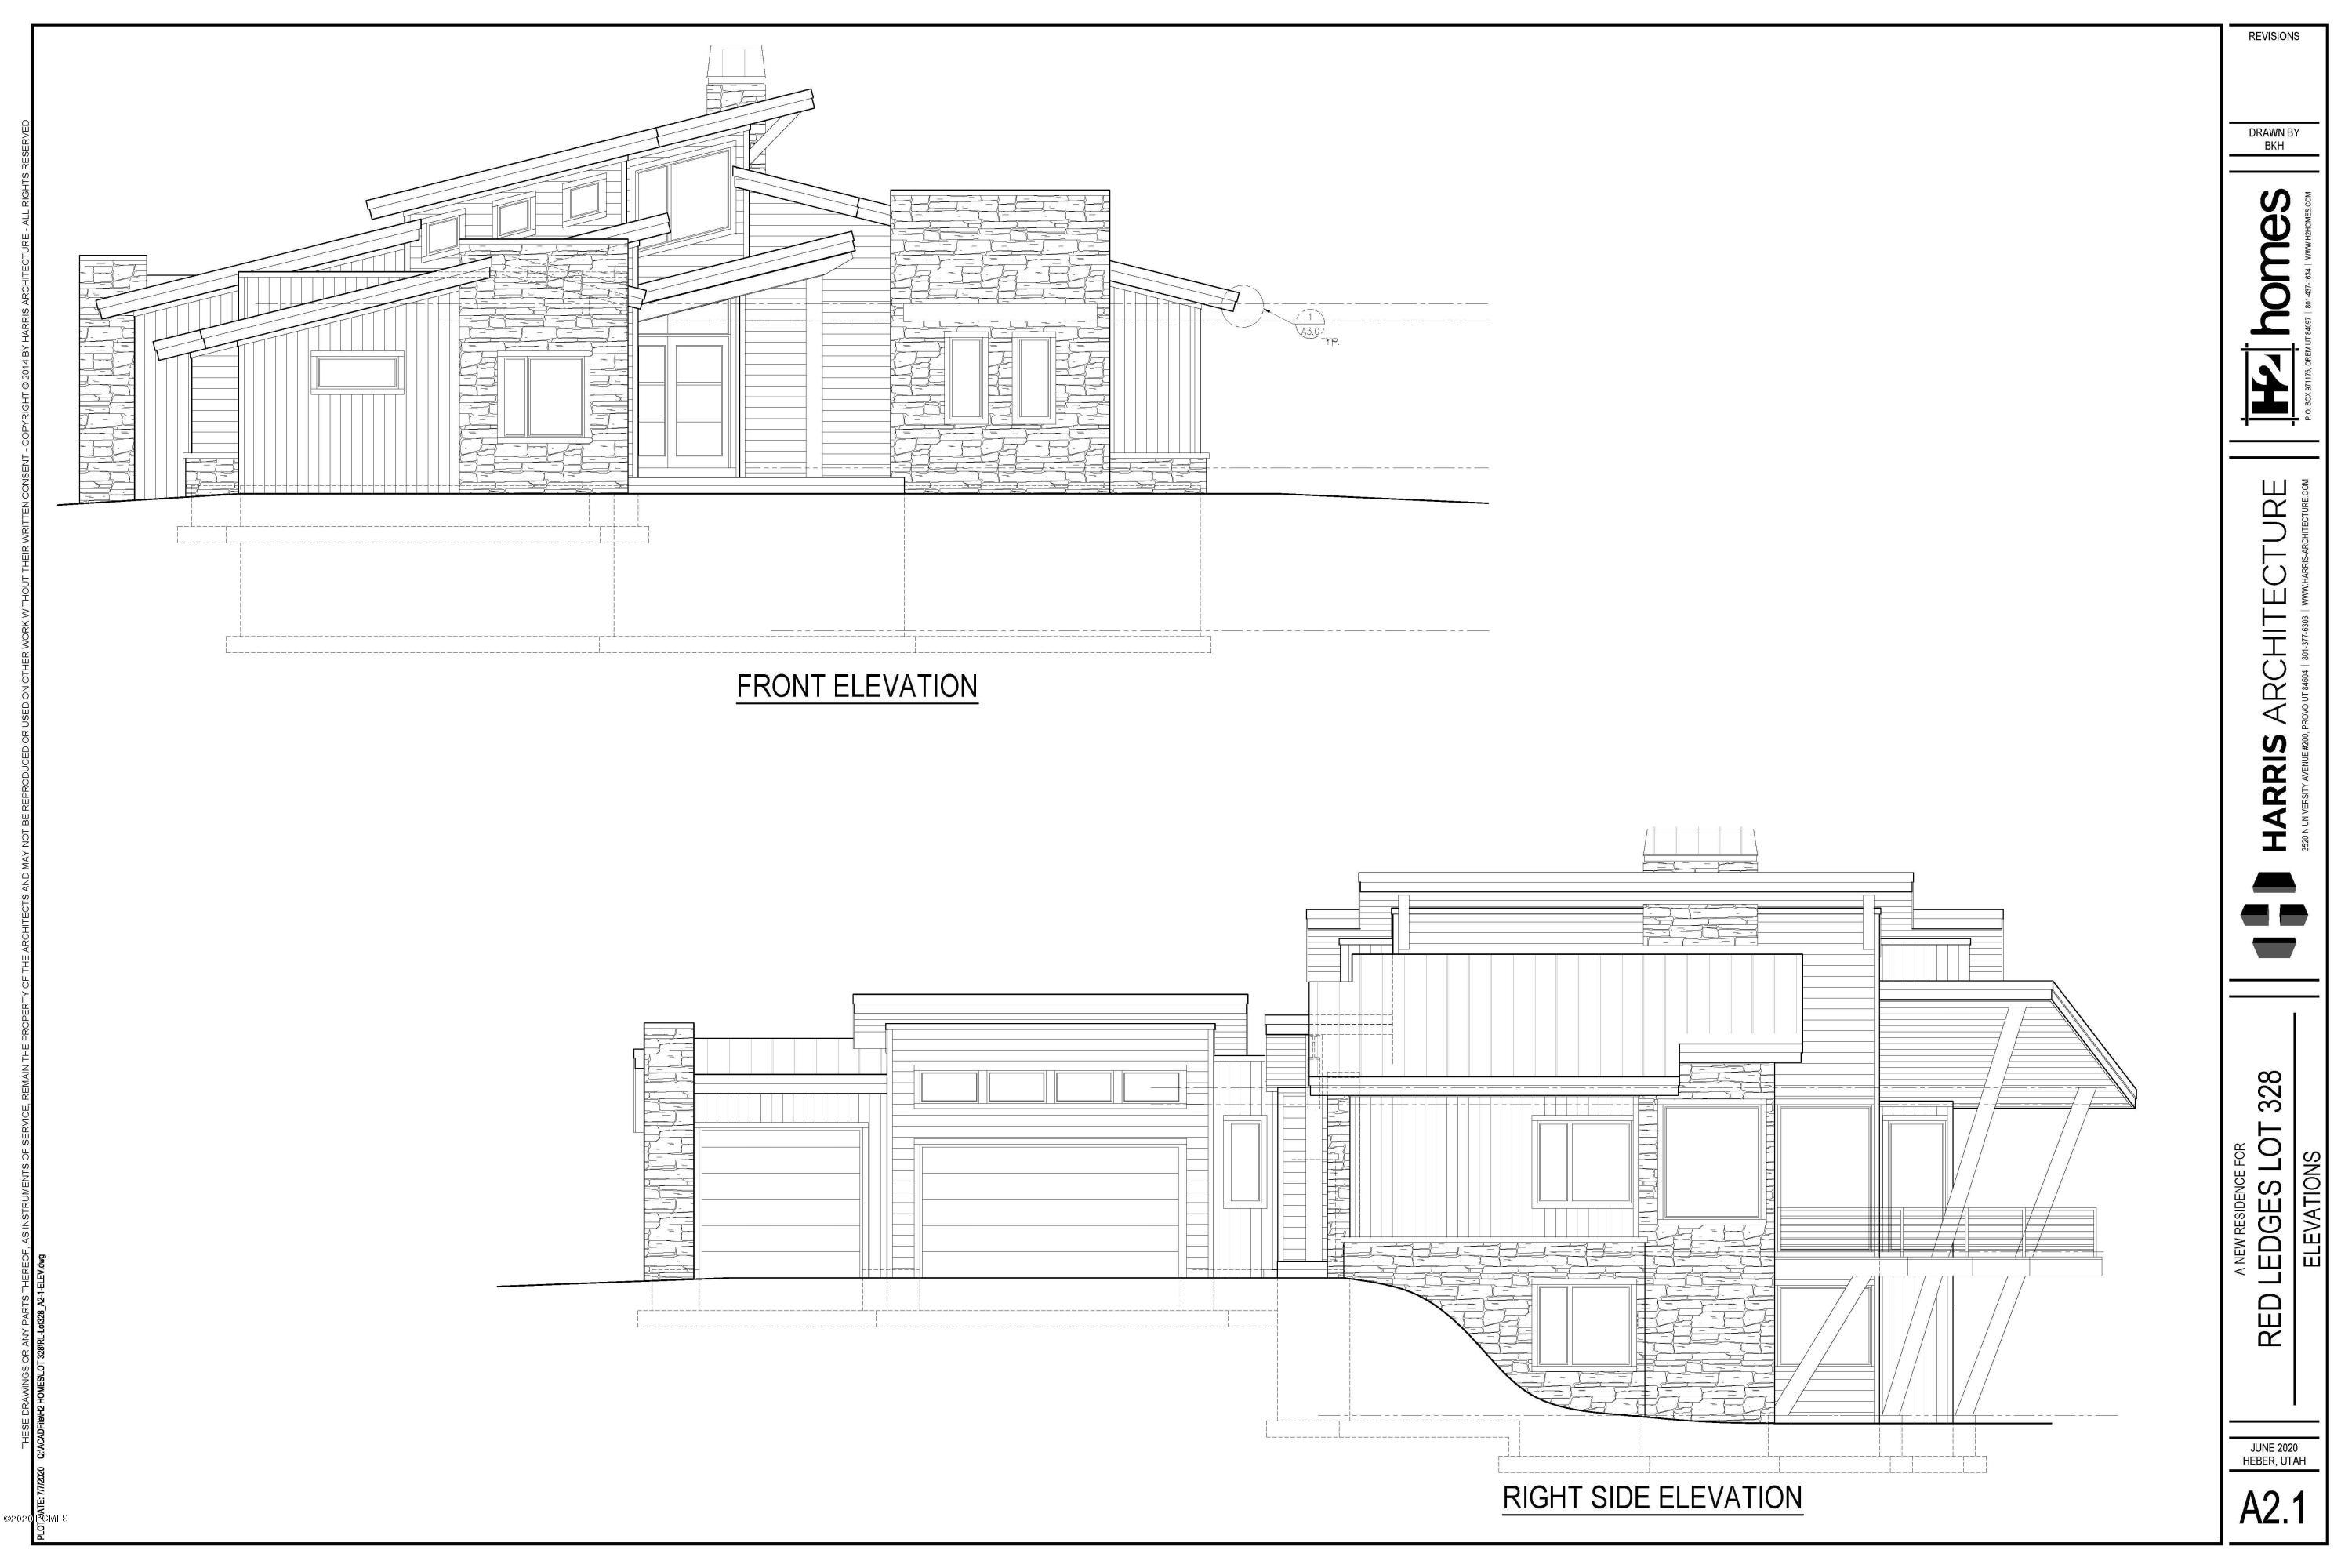 1718 Haystack Mtn. Drive (Lot 328), Heber City, Utah 84032, 4 Bedrooms Bedrooms, ,5 BathroomsBathrooms,Single Family,For Sale,Haystack Mtn. Drive (Lot 328),20190109112430415765000000